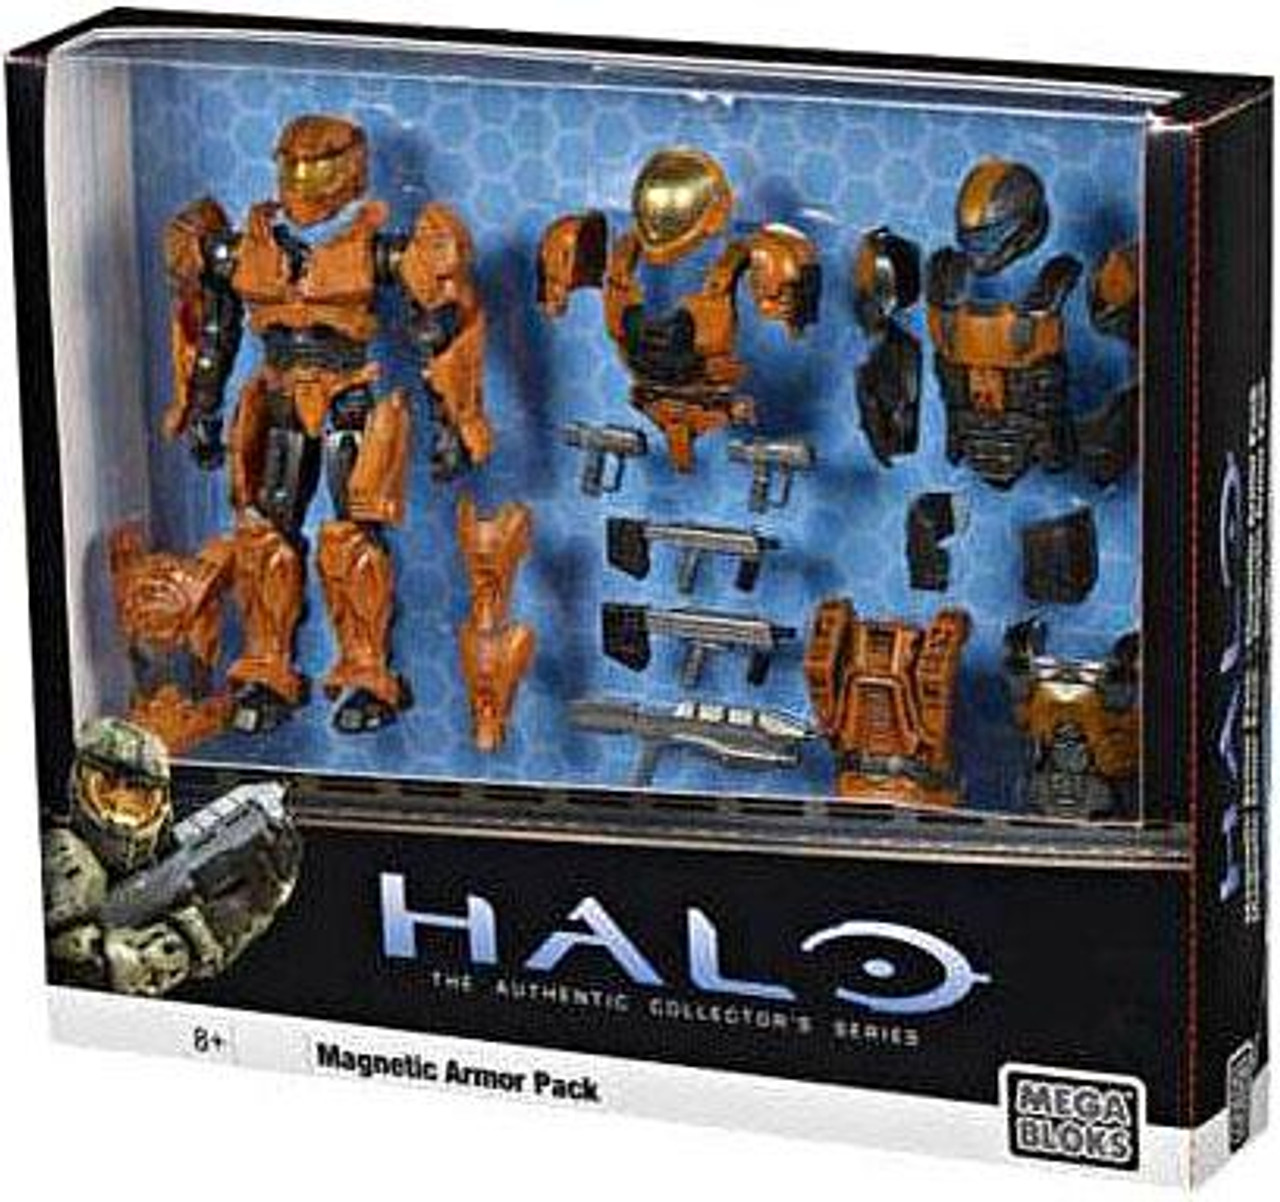 Mega Bloks Halo The Authentic Collector's Series Magnetic Armor Pack Exclusive Set #29767